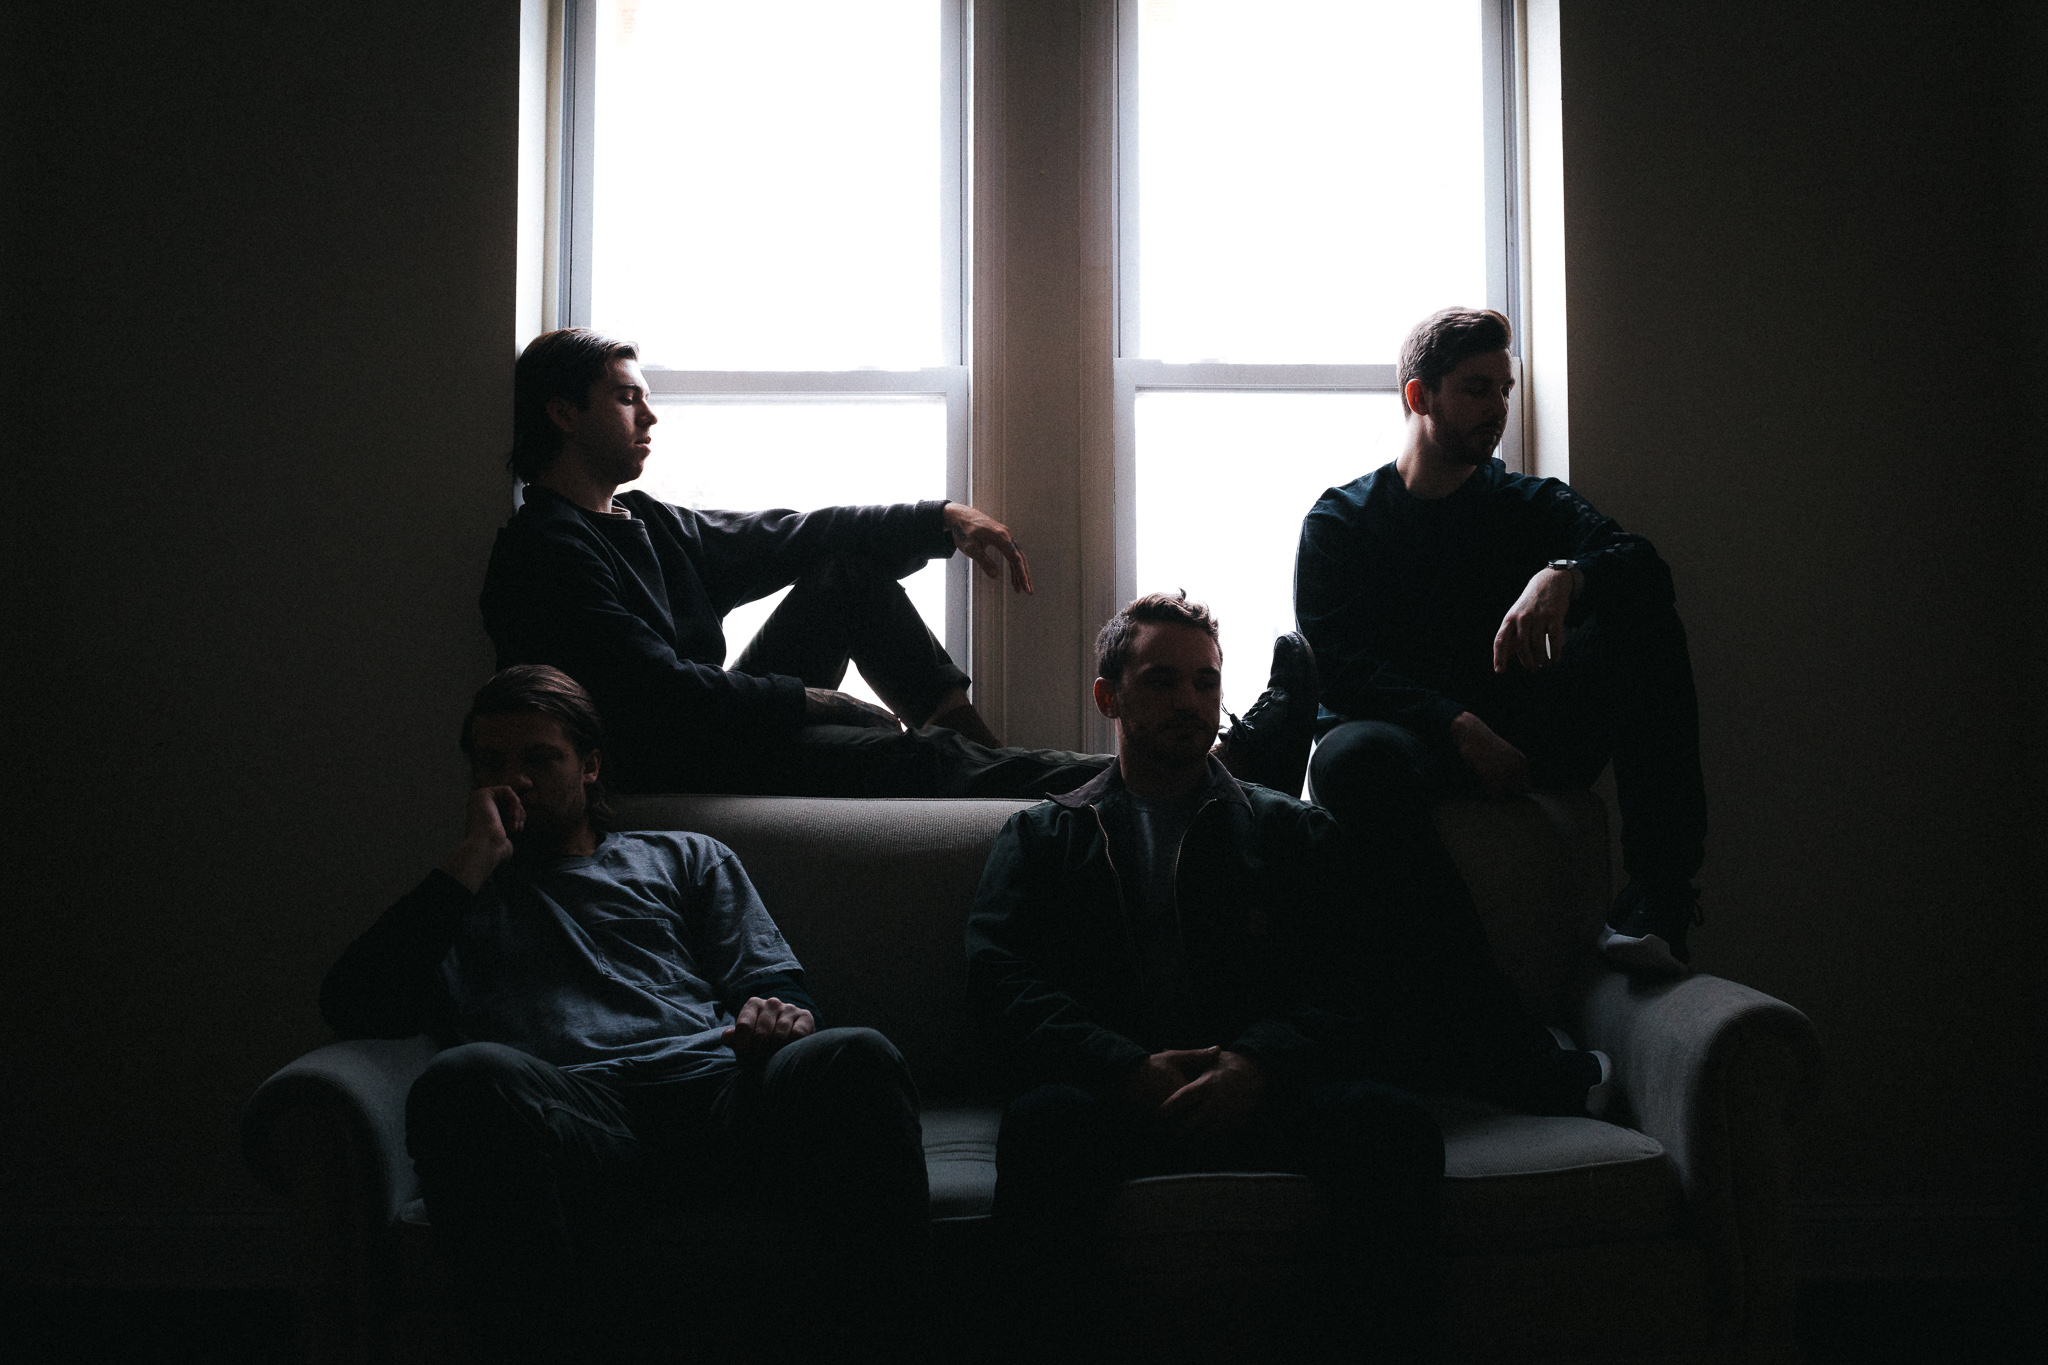 PREMIERE: Rich People strive for silver-linings on their 'Grace Session' EP